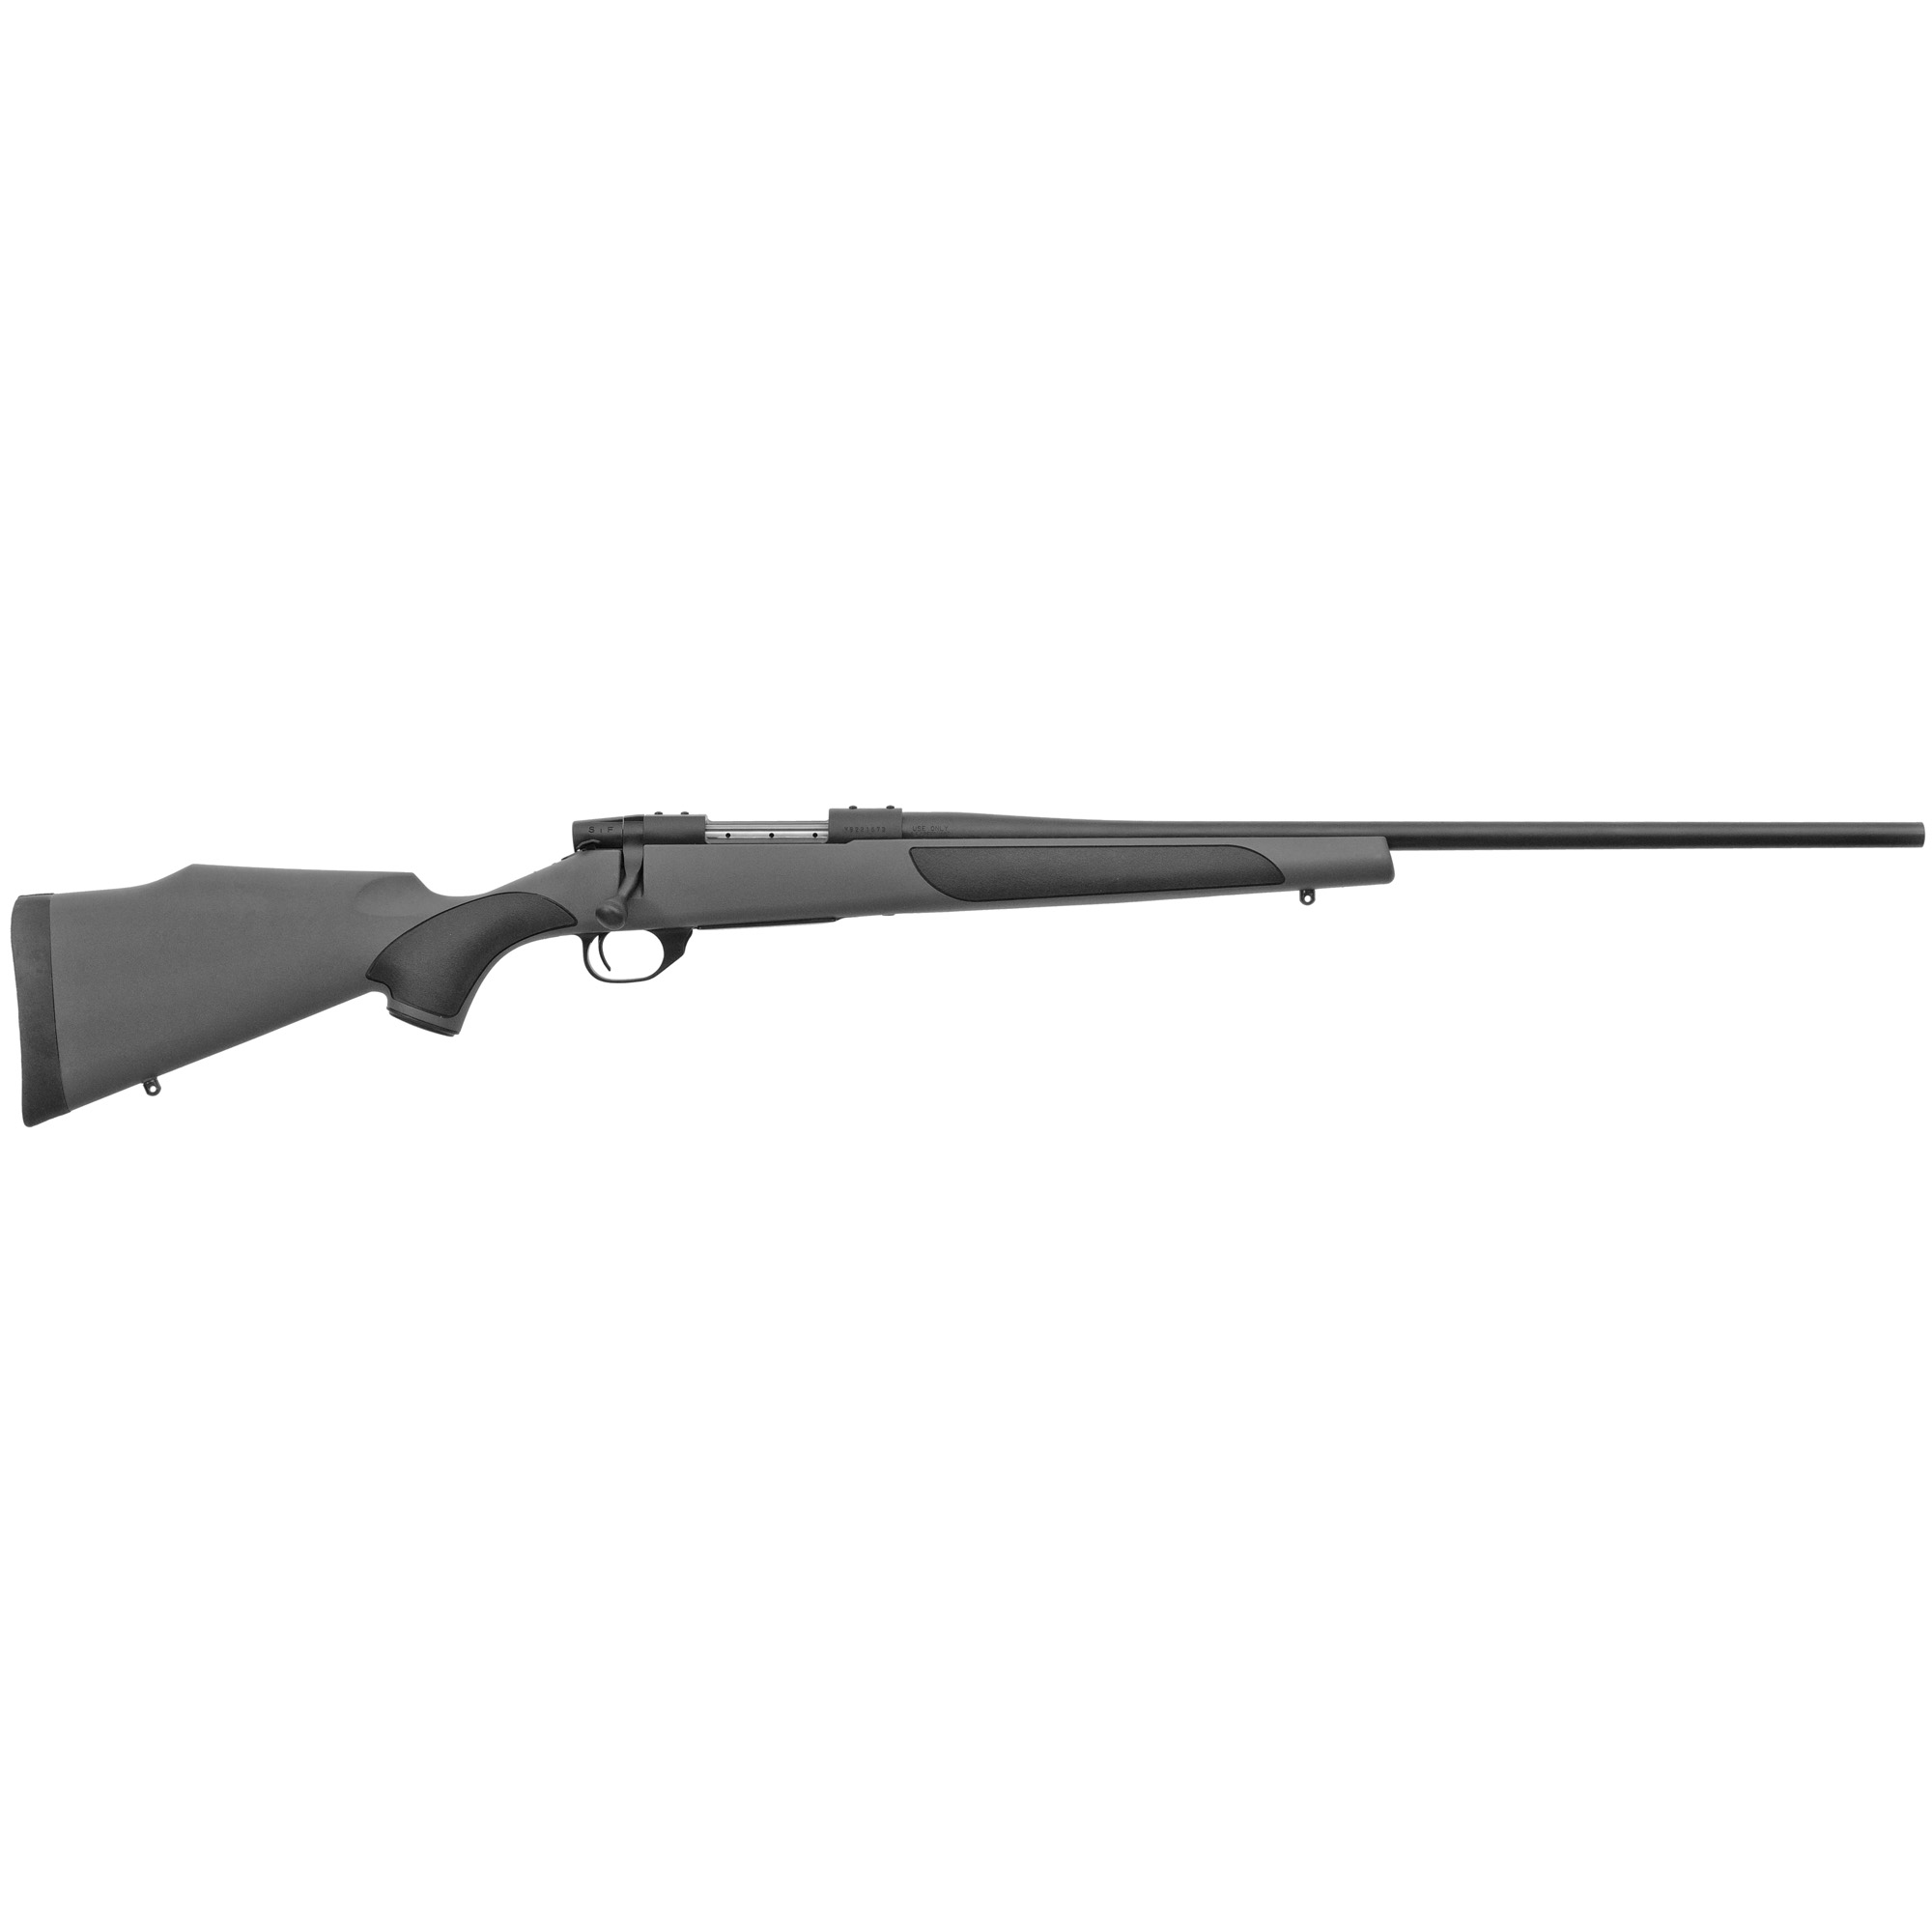 "Weatherby offers the fastest"" flattest shooting rifles on the market and the confidence of guaranteed SUB-MOA accuracy. That's why the Vanguard(R) has become one of the most popular rifle options today. Shoulder a Weatherby(R) Vanguard(R) and see for yourself the best rifle value on the market today."